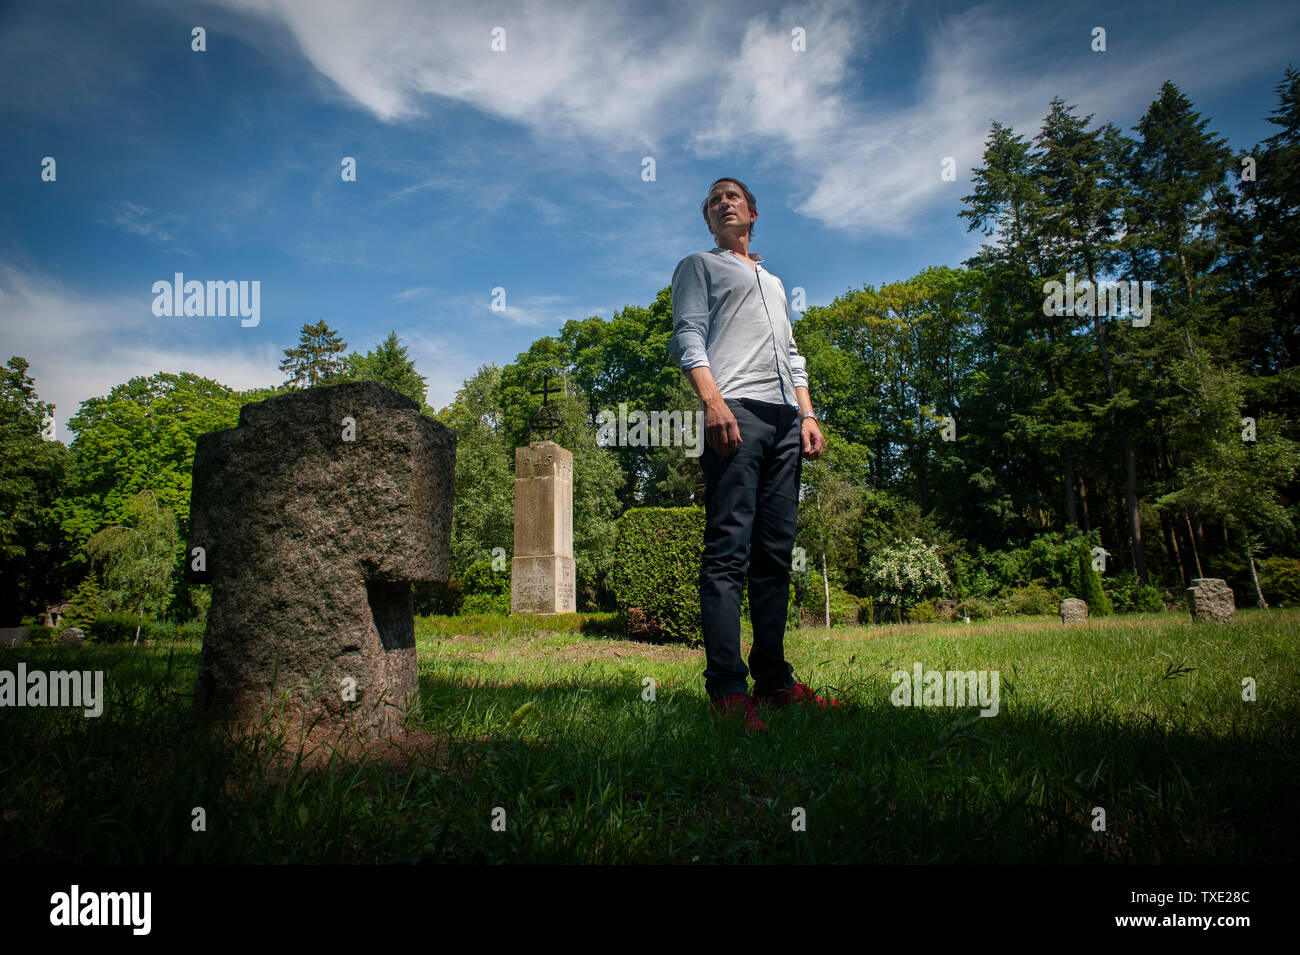 Author and Historian Florian Huber at Demmin Cemetery standing on the Memorial and mass grave site of the mass suicide victims from WW2. - Stock Image